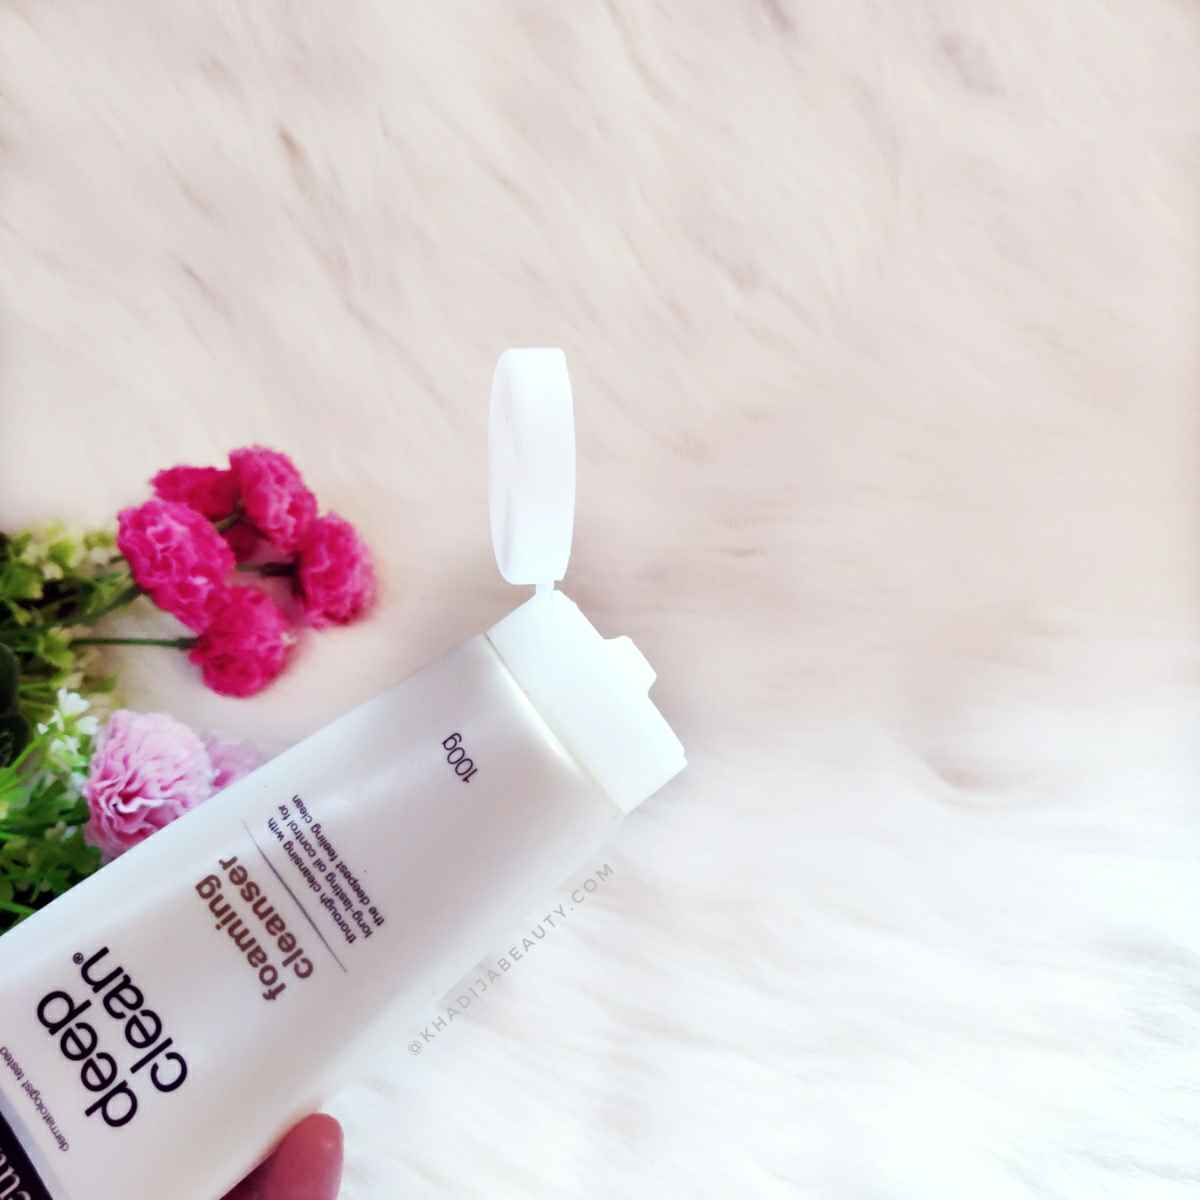 Neutrogena deep clean foaming cleanser Review